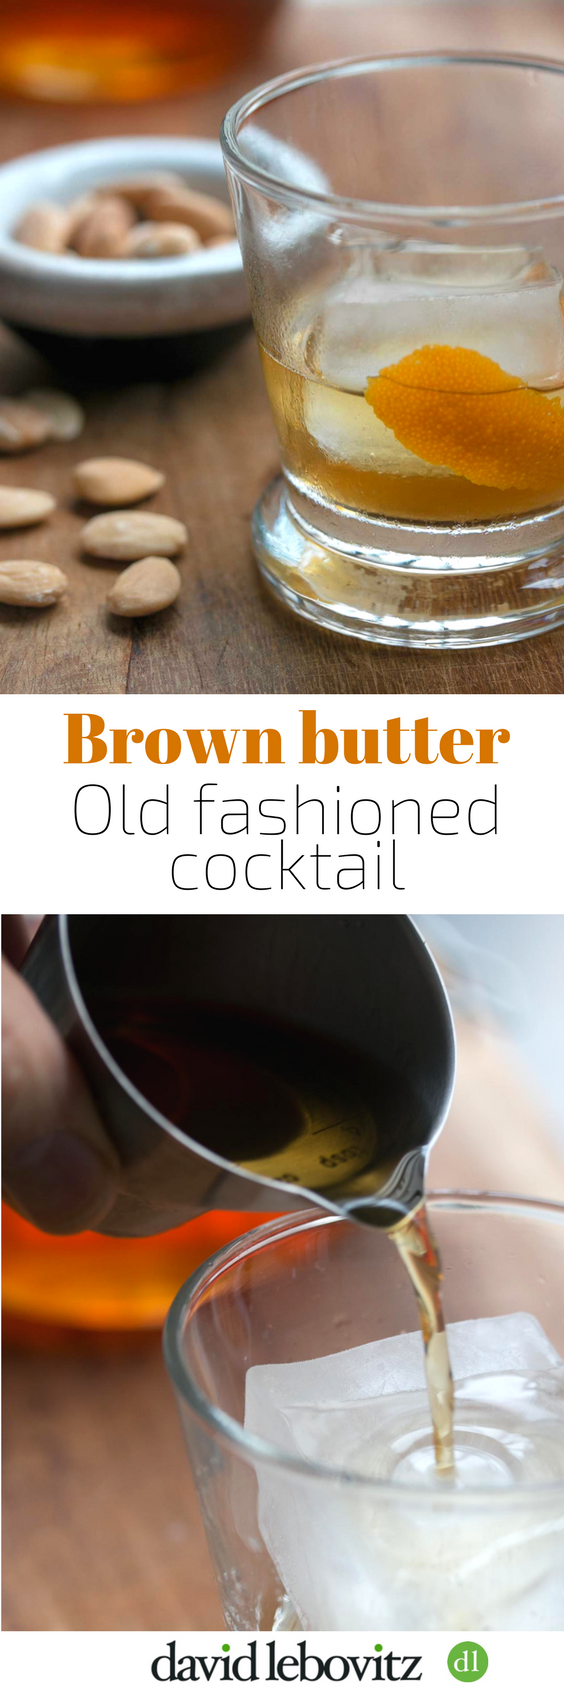 Brown Butter Old Fashioned cocktail